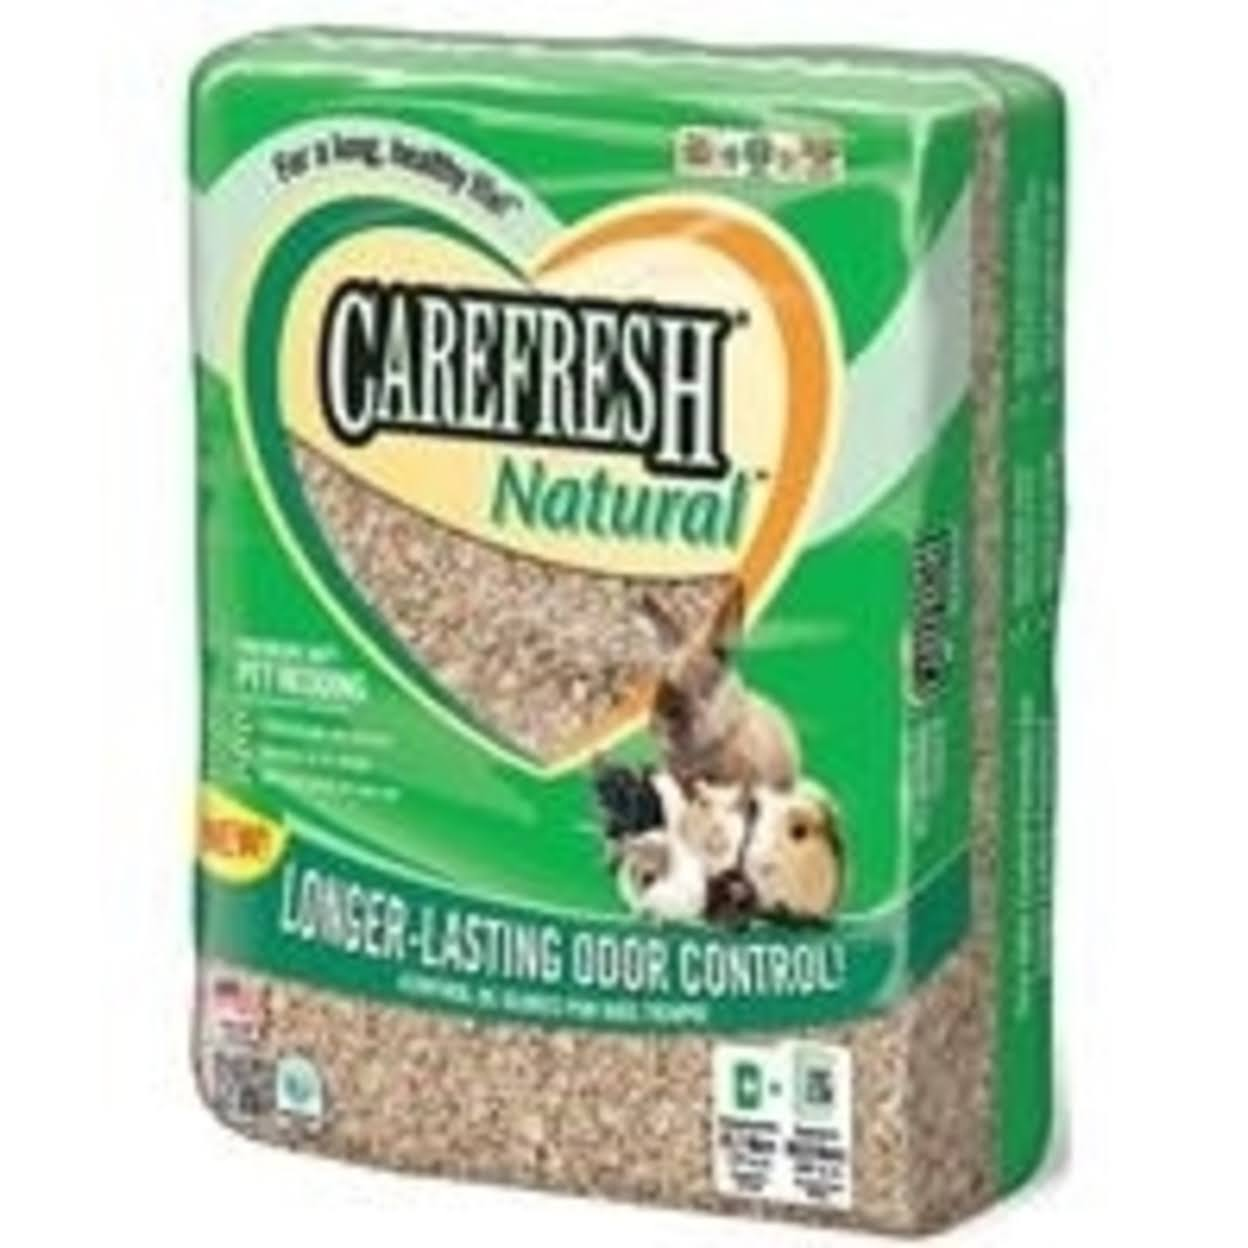 Carefresh Complete Pet Bedding - Natural, 60l